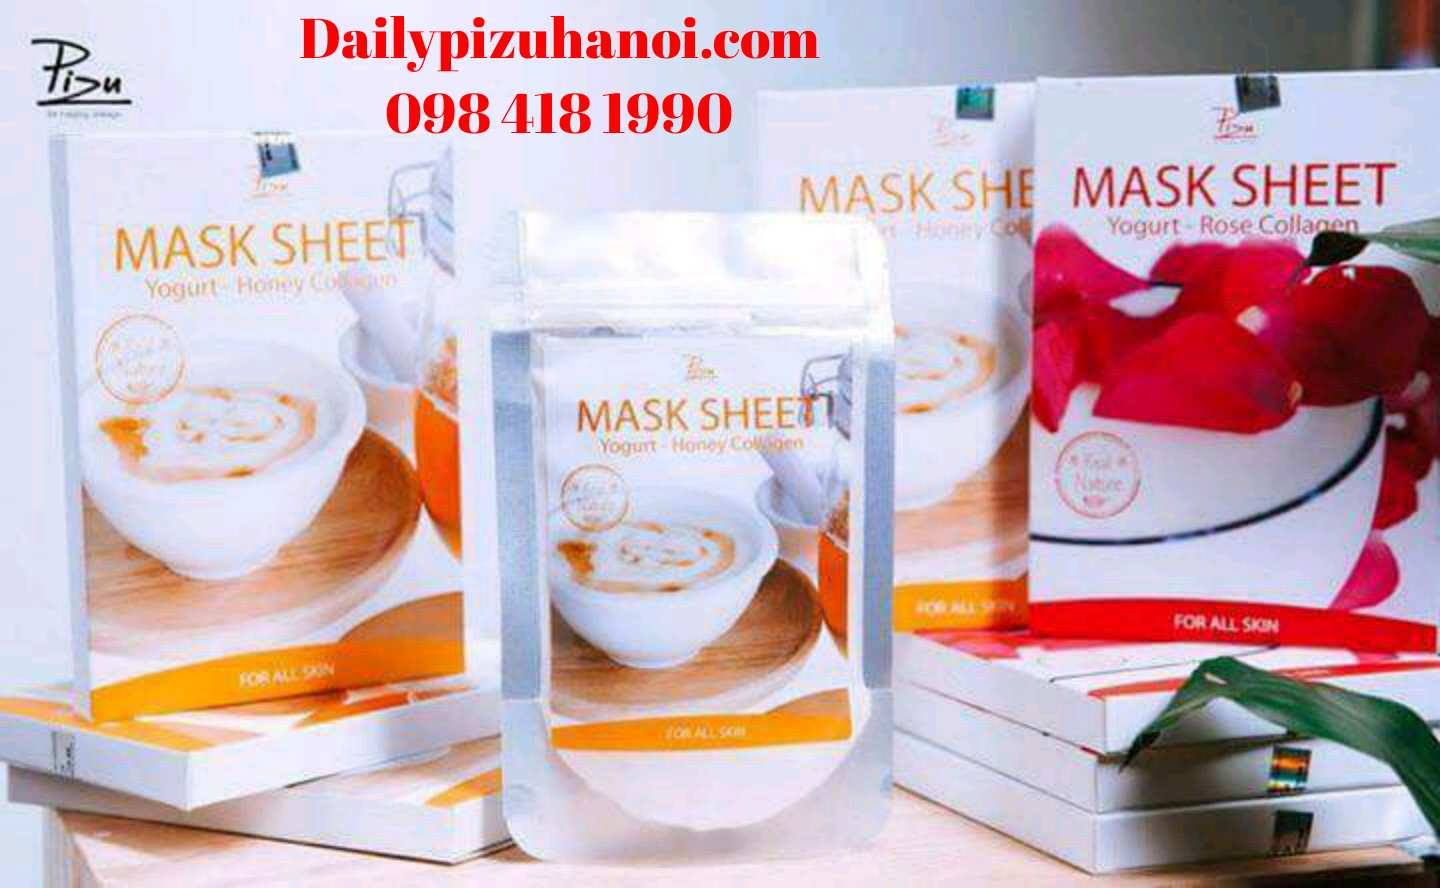 Mặt nạ sữa chua mật ong Pizu, Mask Sheet Yogurt - Honey Collagen